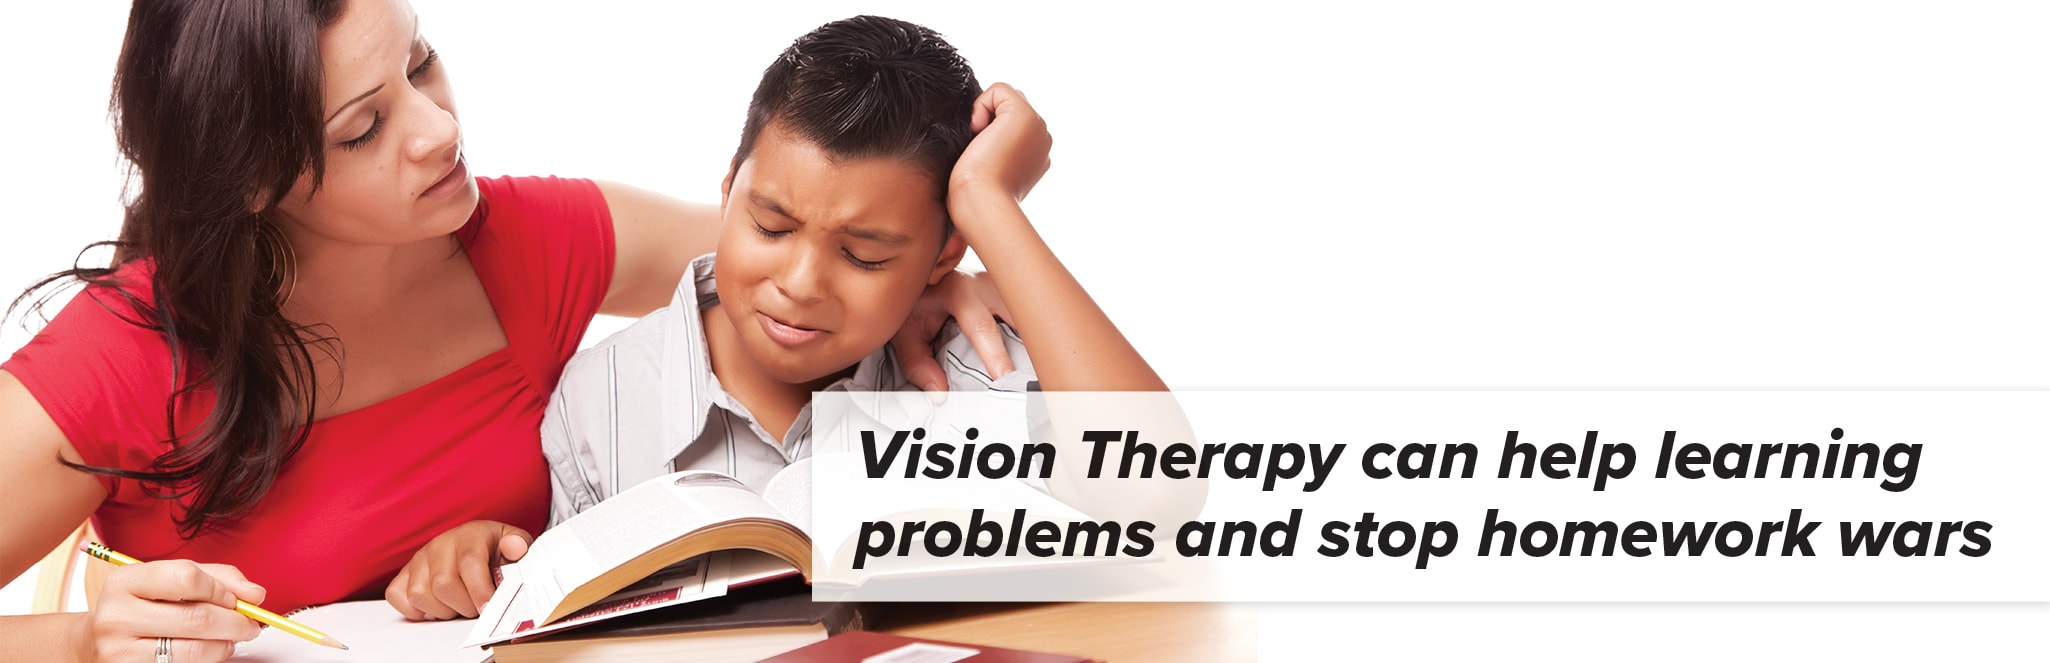 Vision-Therapy-can-help